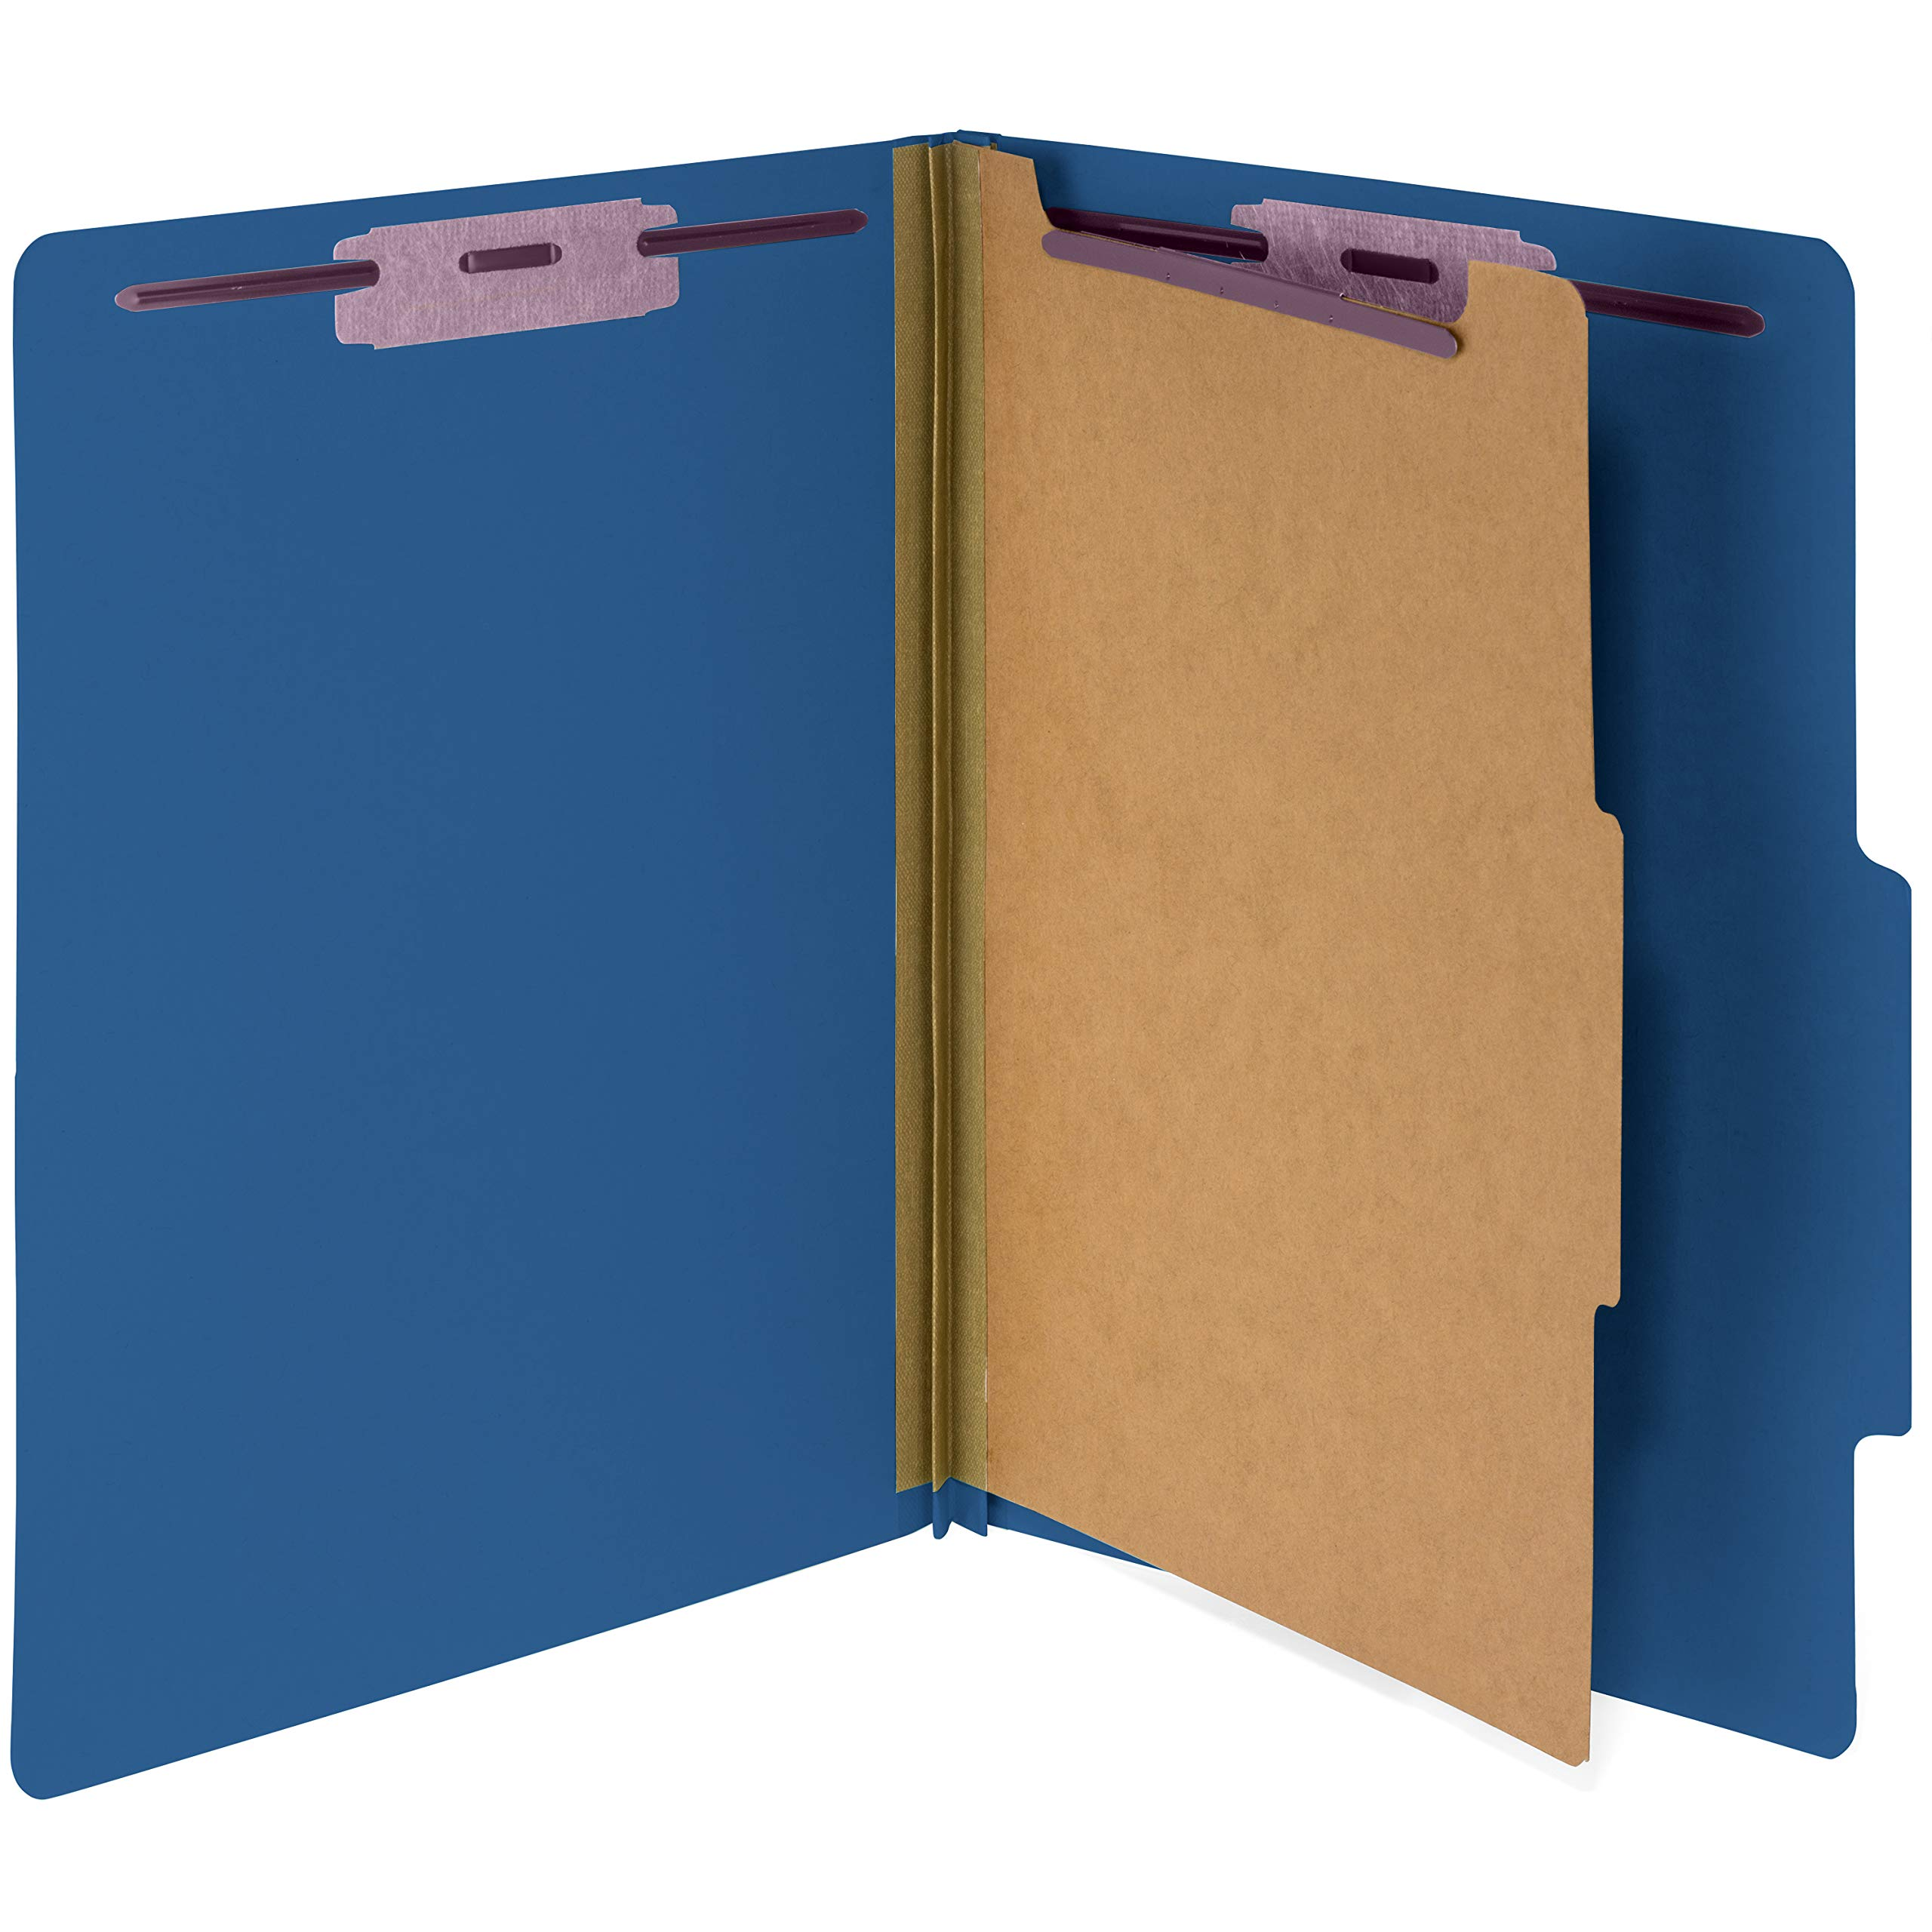 10 Dark Blue Classification Folders- 1 Divider-2'' Tyvek expansions- Durable 2 Prongs Designed to Organize Standard Medical Files, Law Client Files, Office Reports– Letter Size, Dark Blue, 10 Pack